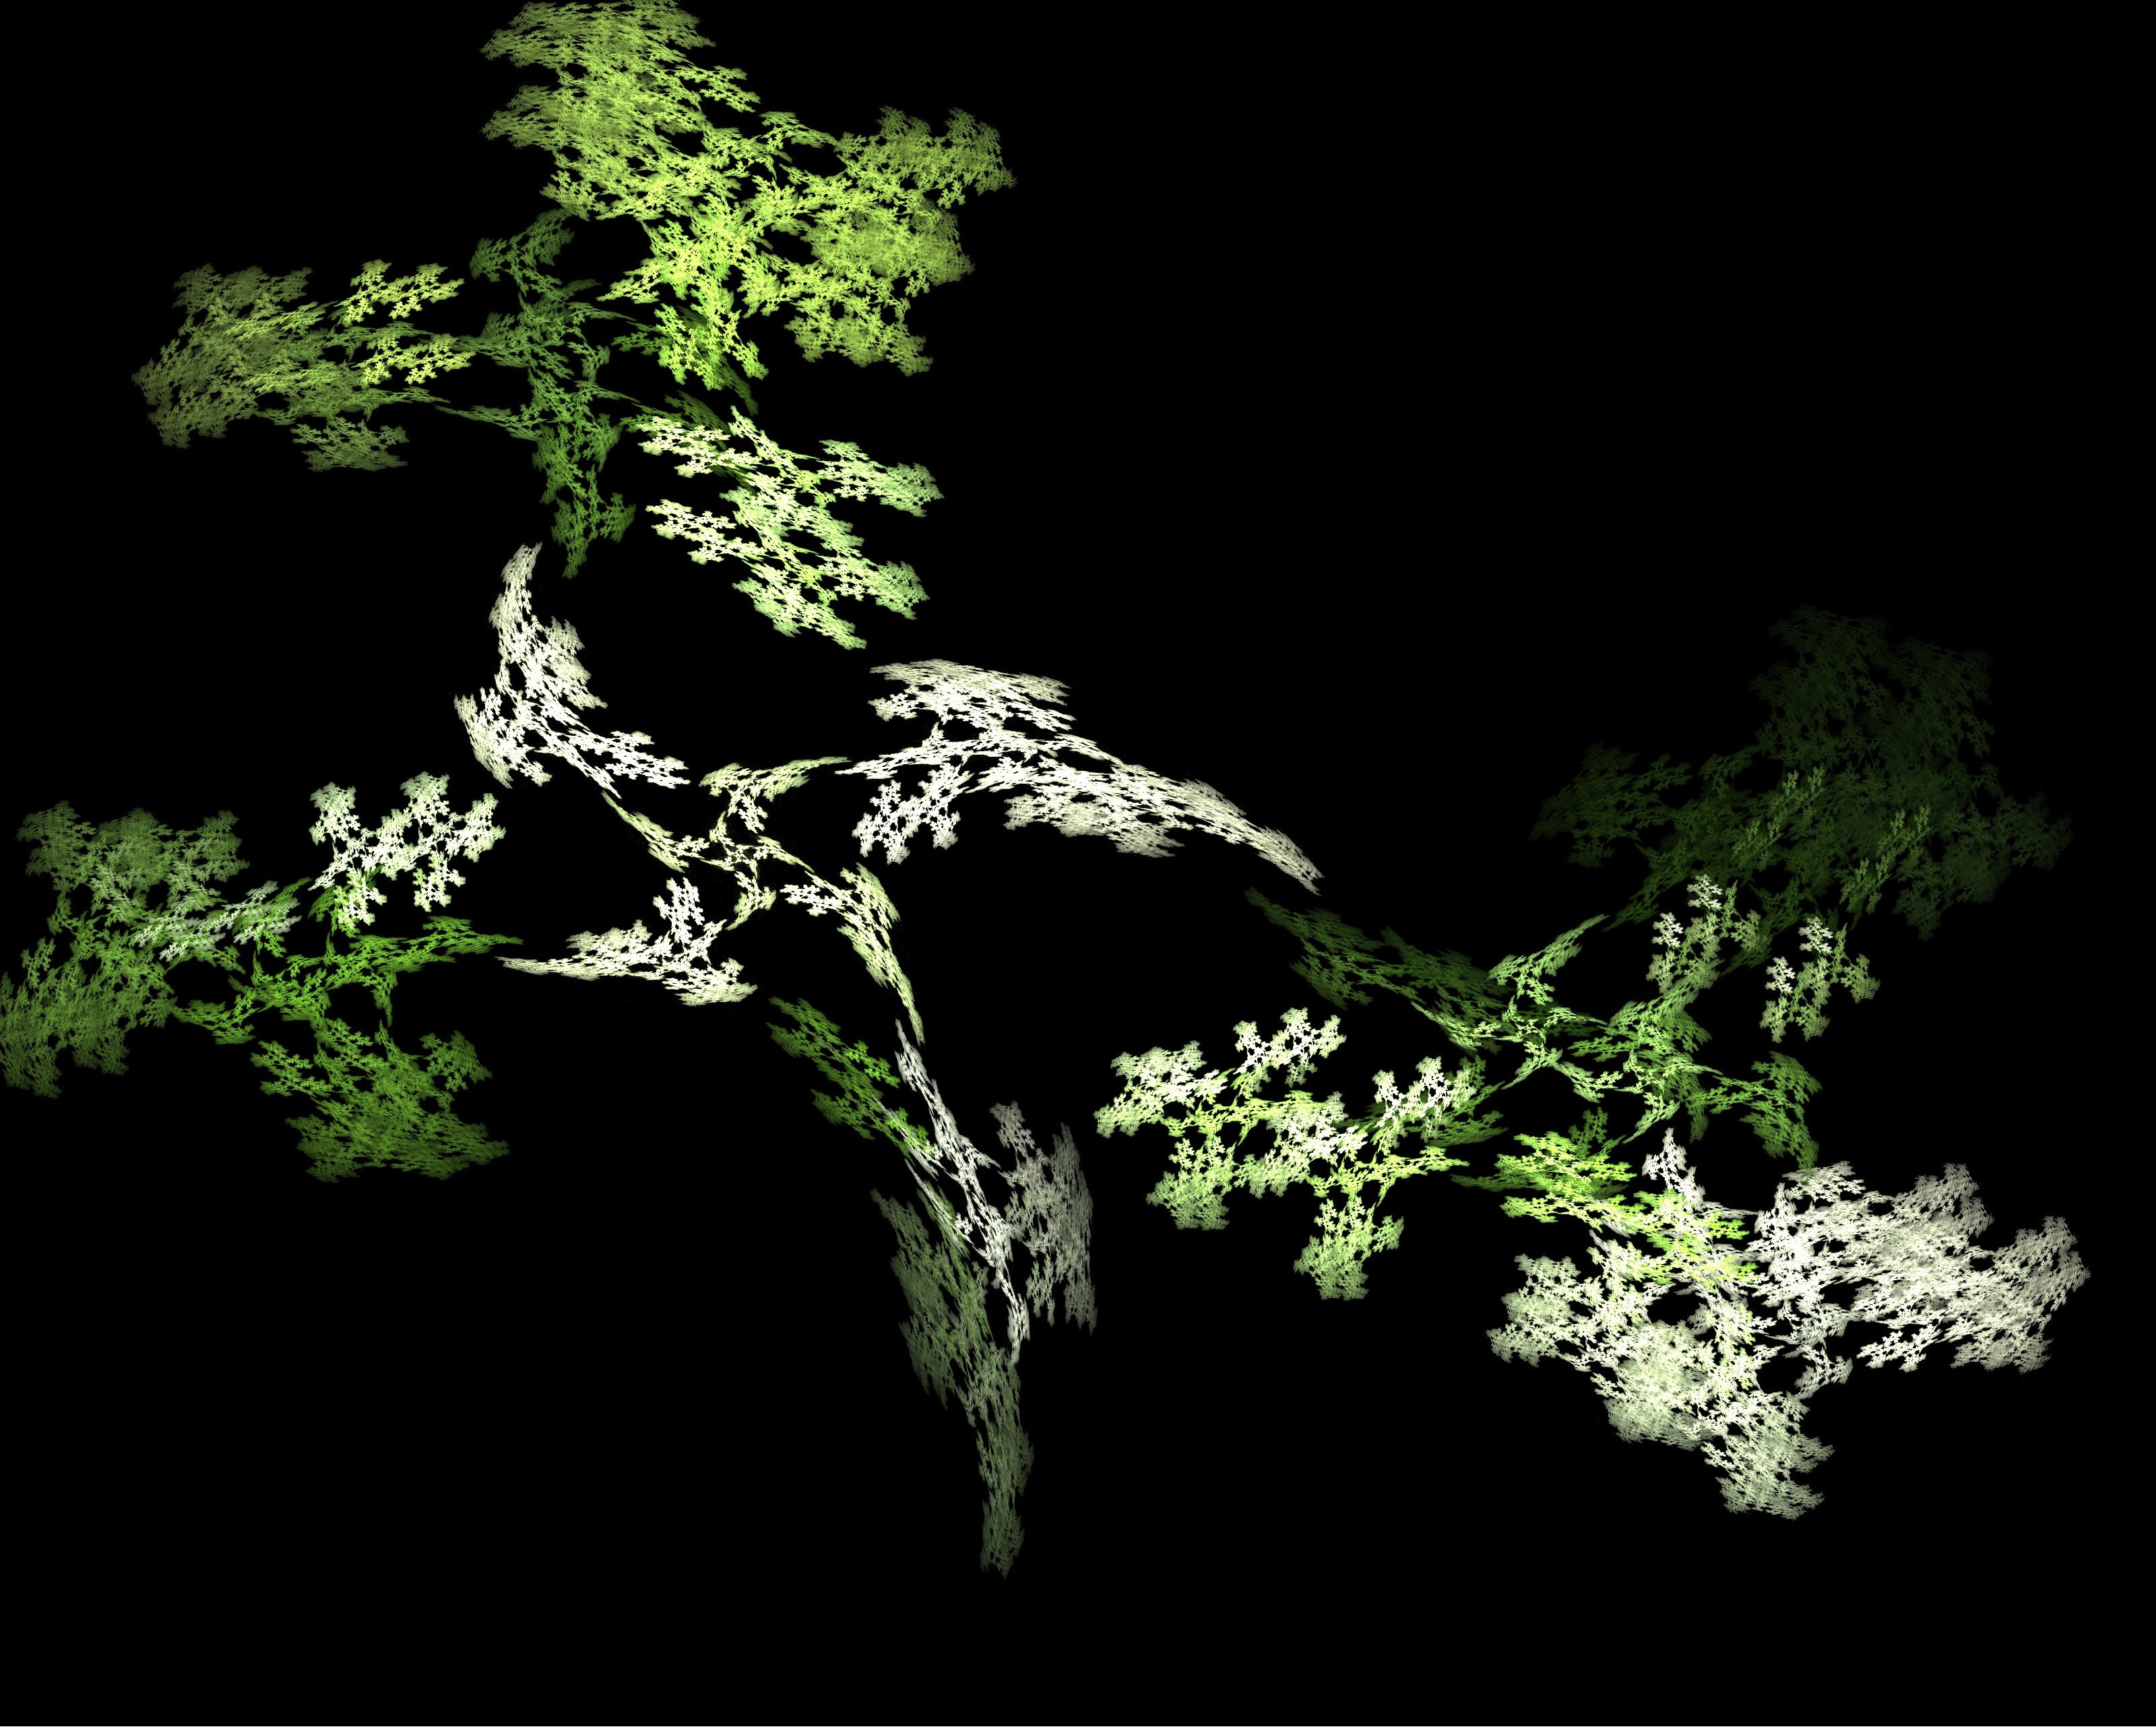 fractal pattern emotive of tiny green leaves with motion distortion